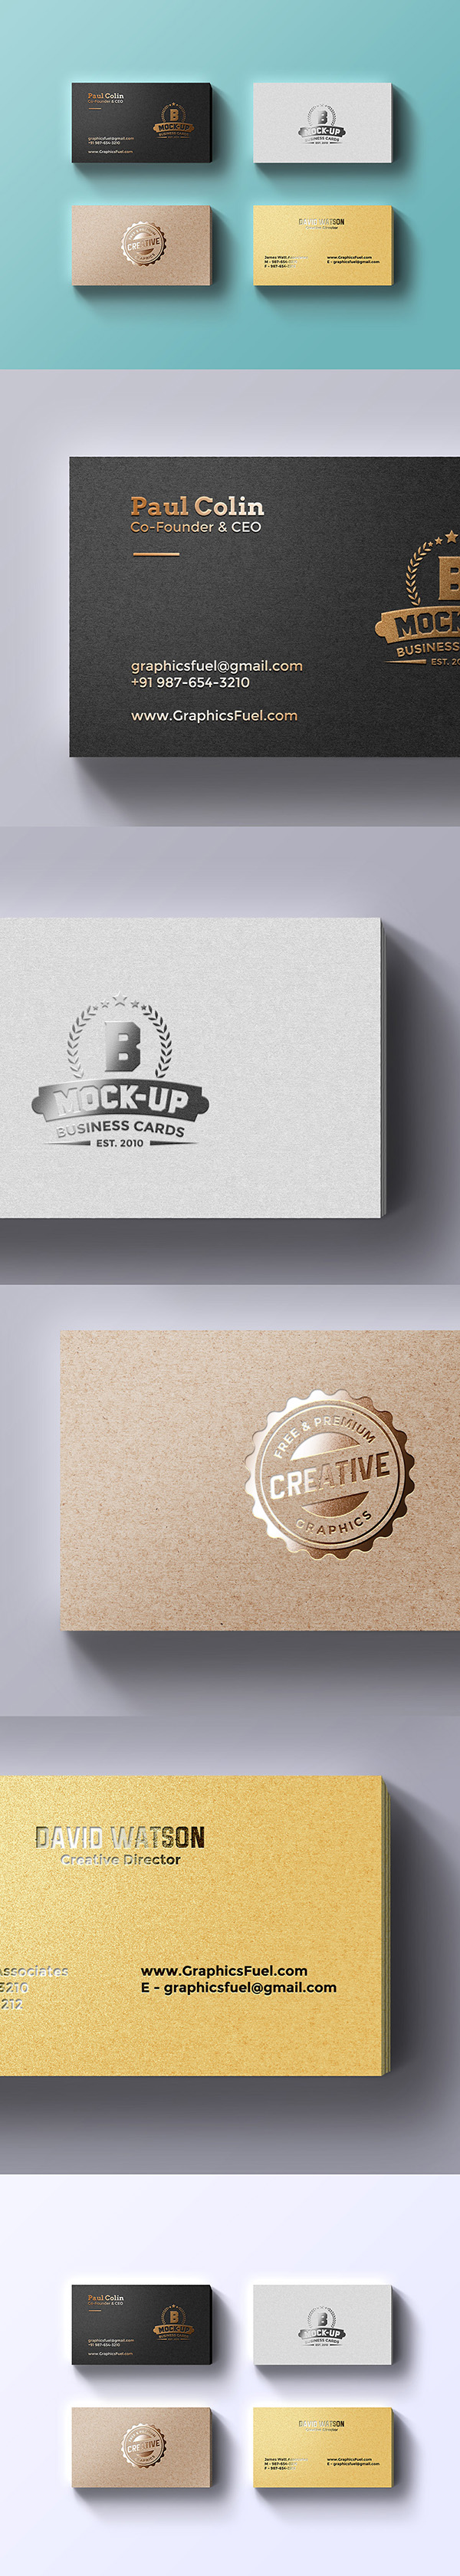 Free-Foil-Business-Cards-Mock-up